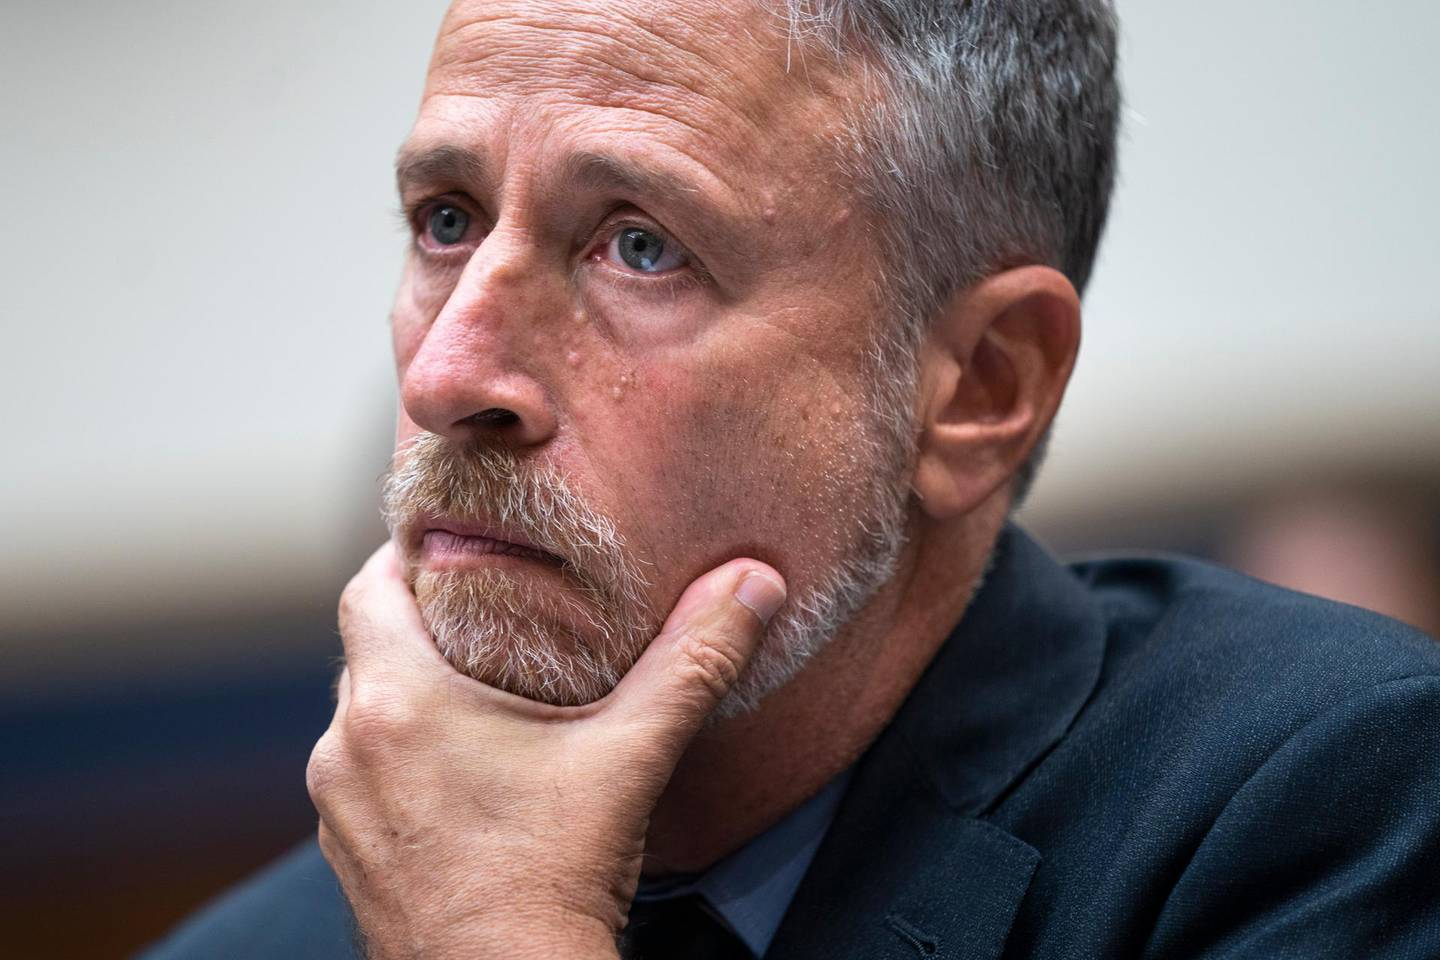 epa07641260 Jon Stewart, the former host of 'The Daily Show,' testifies before a House Judiciary Committee hearing called 'The Need to Reauthorize the September 11th Victim Compensation Fund' in the Rayburn House Office Building in Washington, DC, USA, 11 June 2019.  EPA/JIM LO SCALZO